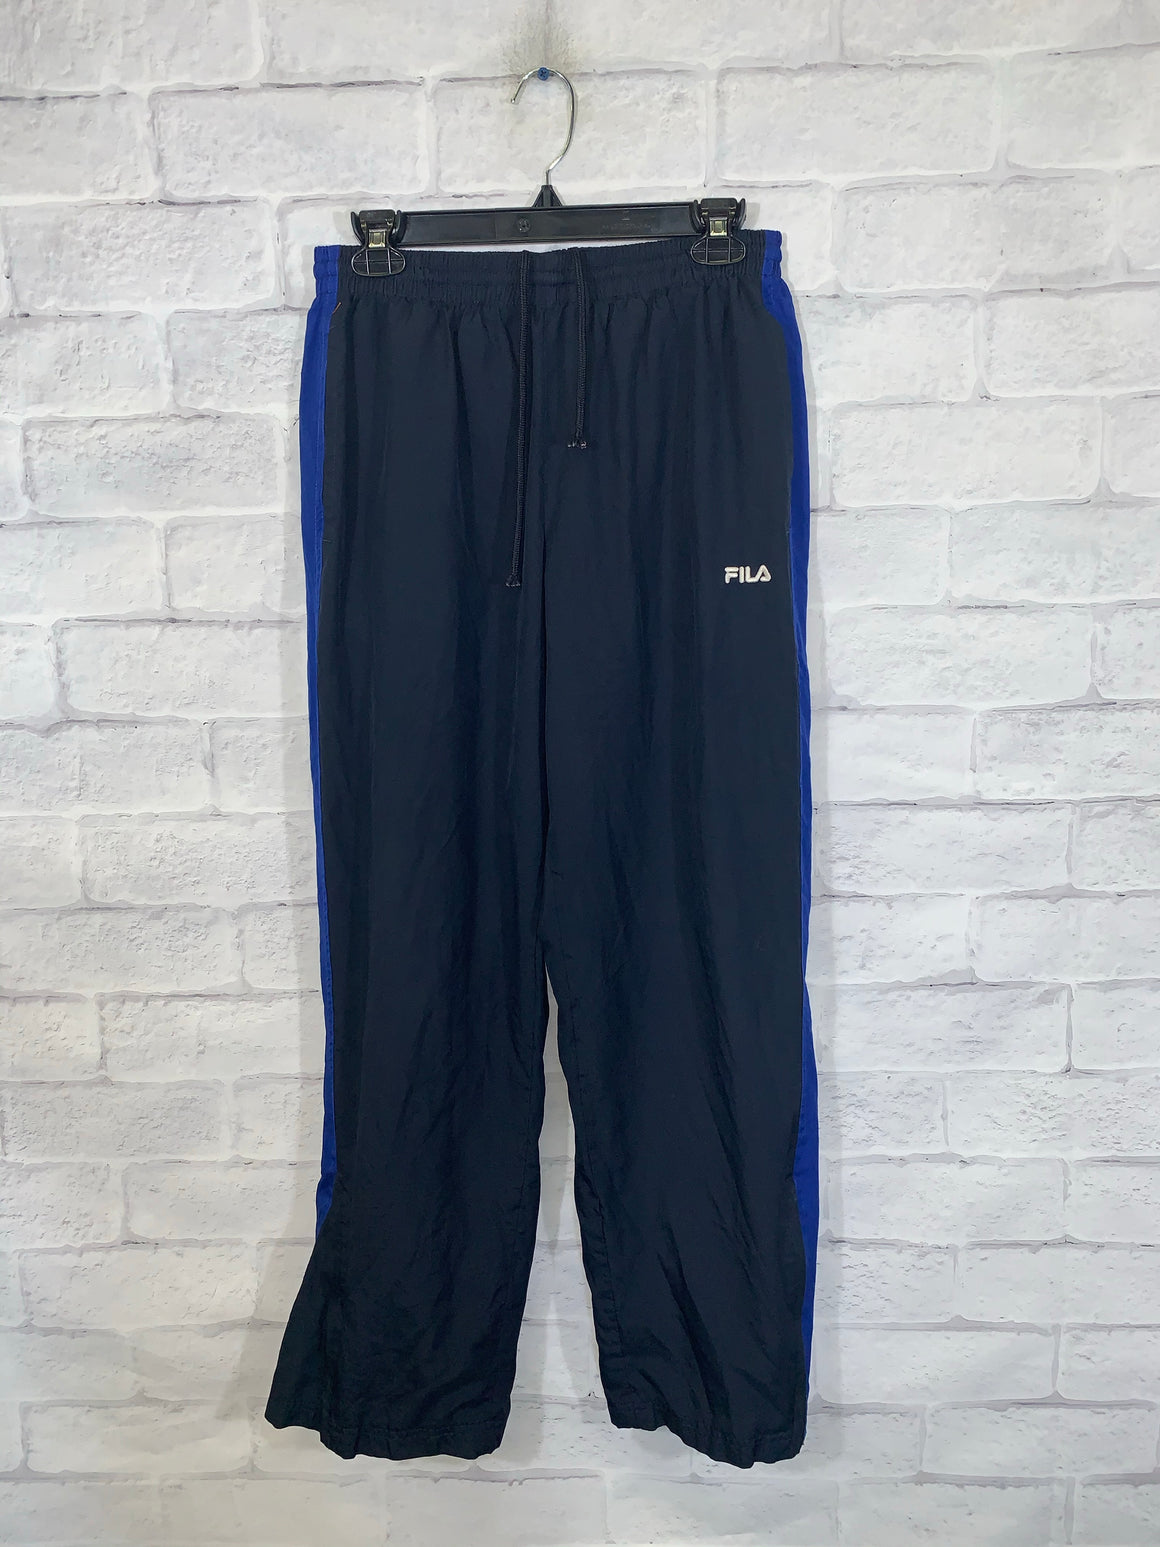 Vintage Blue Fila Sweatpants